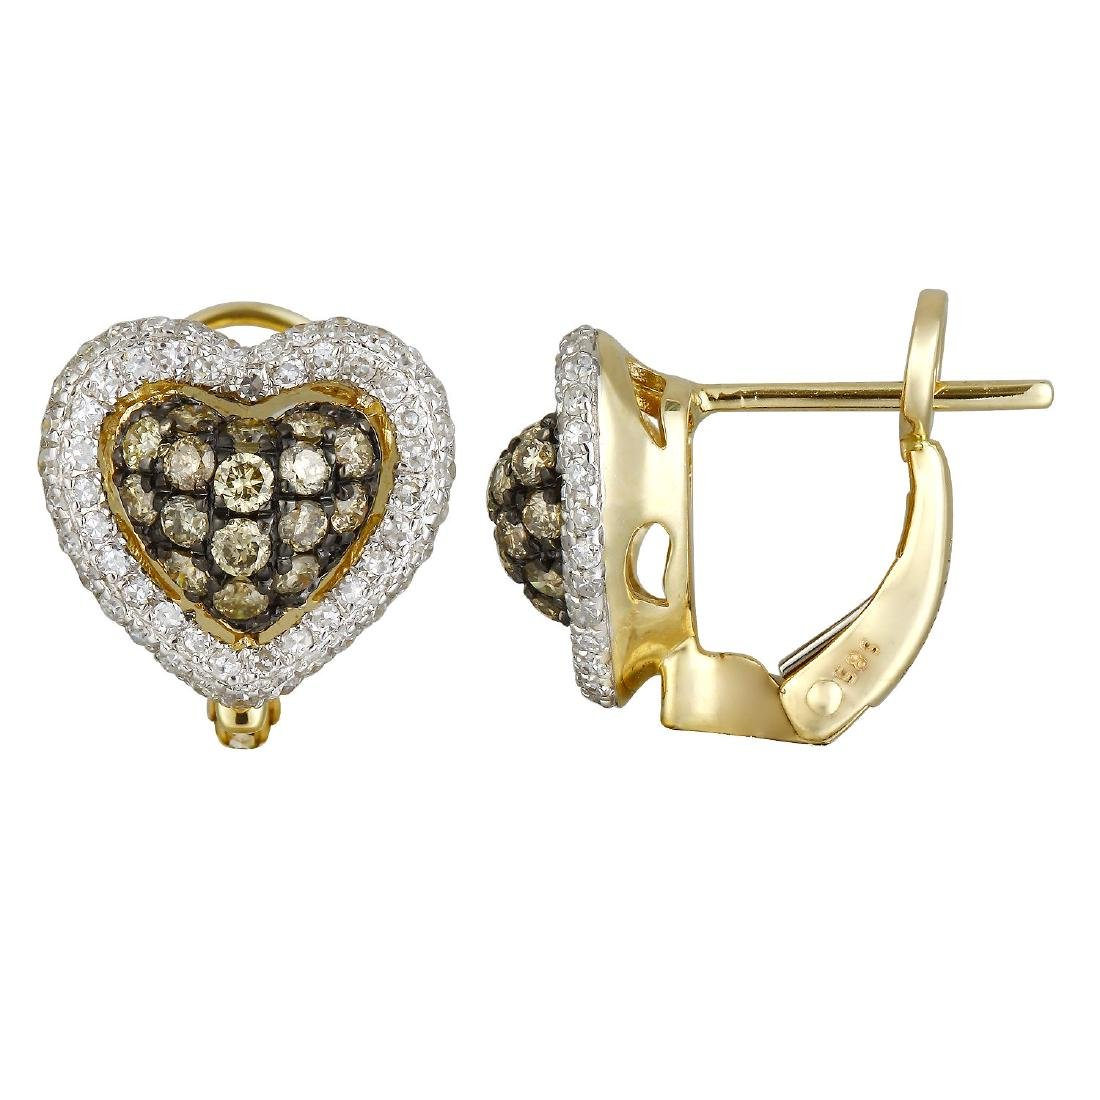 14KT Yellow Gold Diamond Earrings - 2